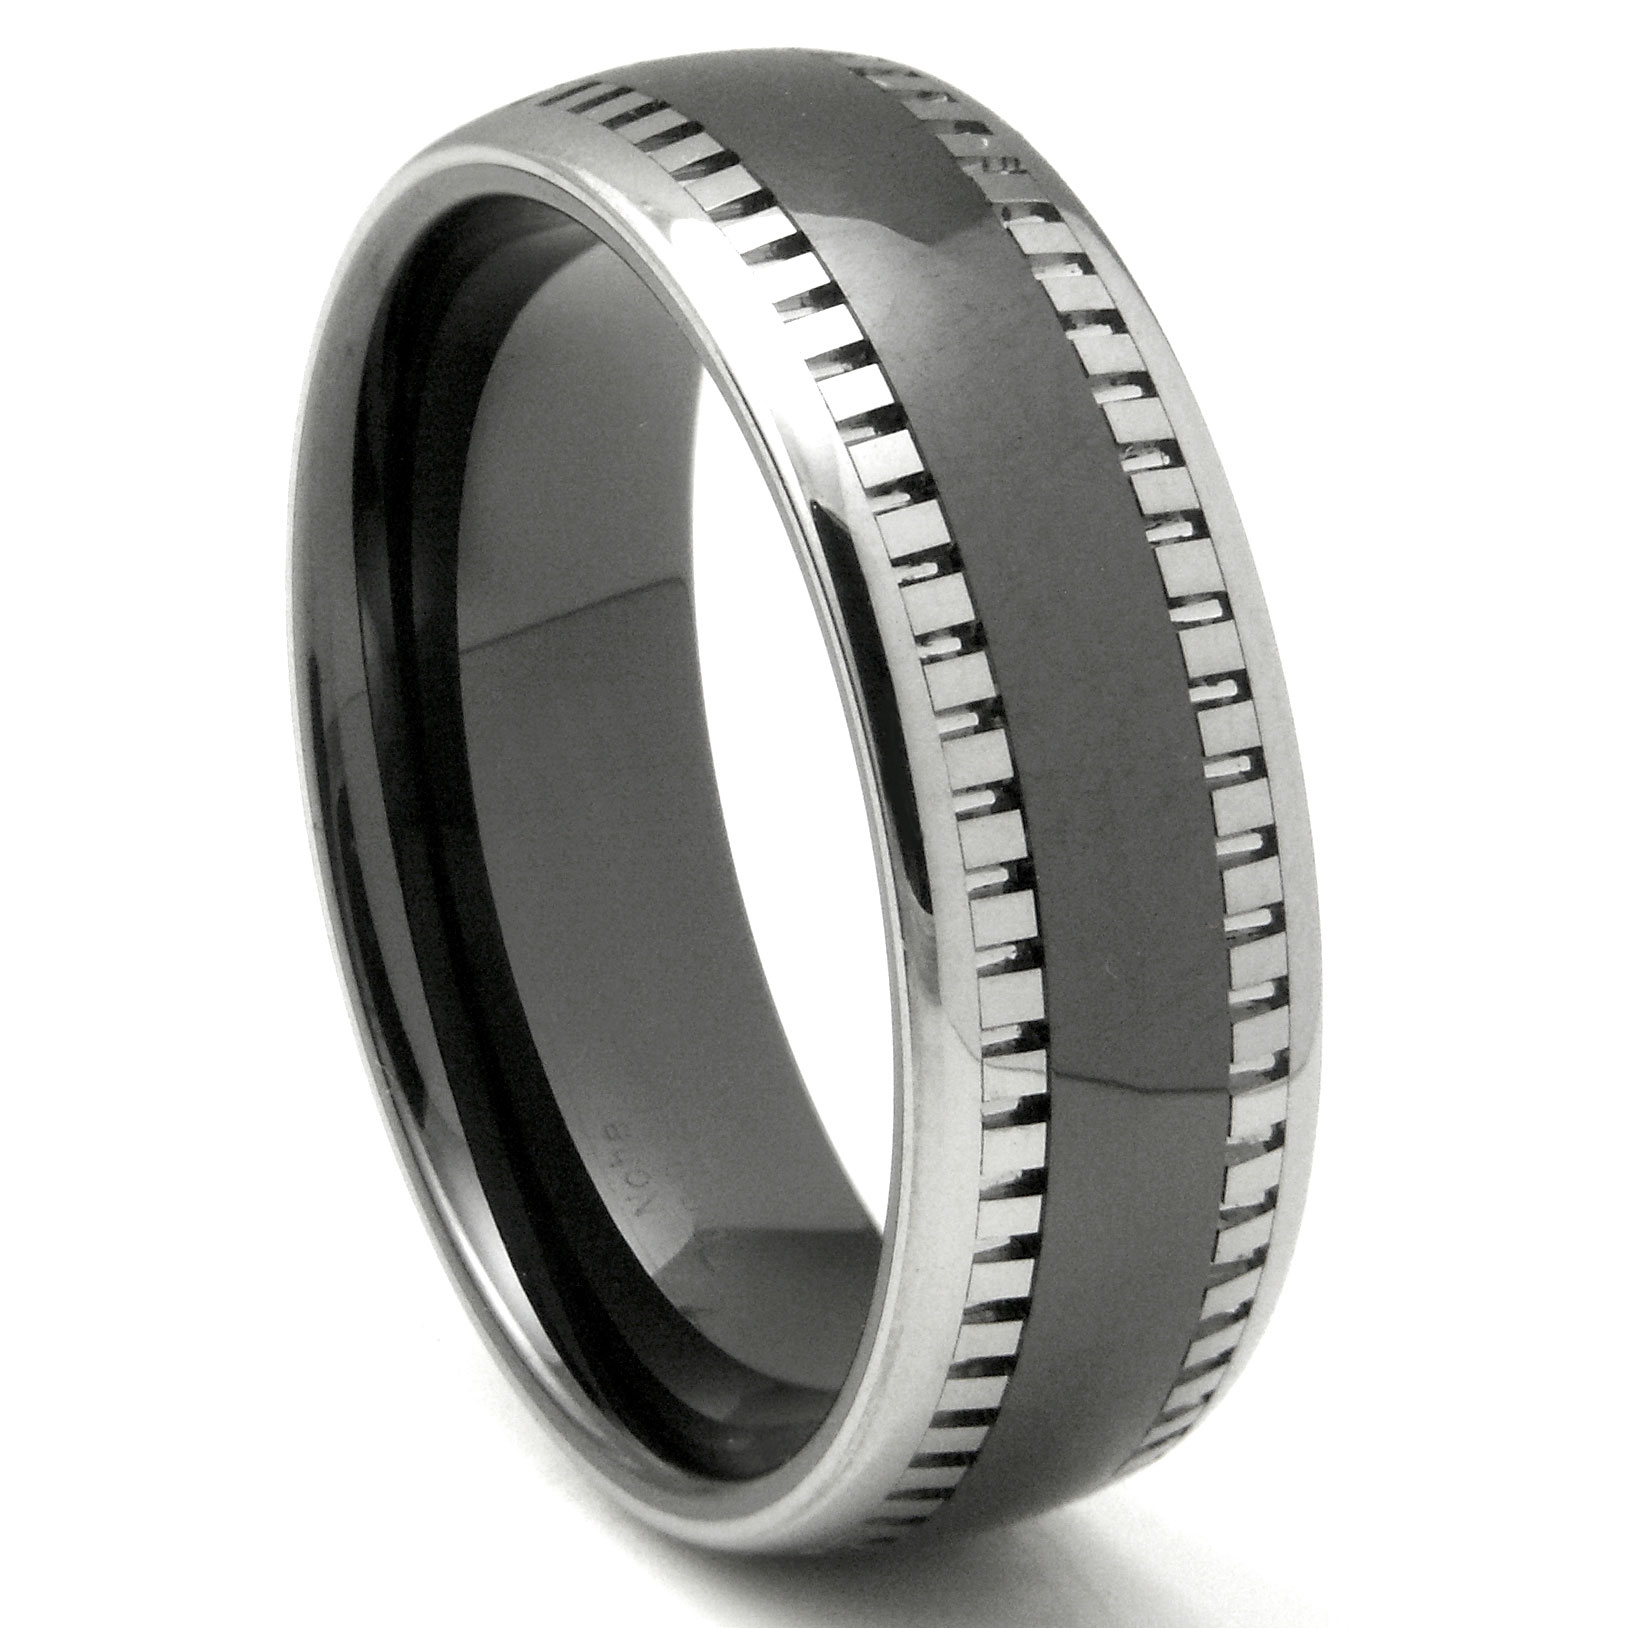 tungsten bands selling black ring rings with diamonds white titanium panzer triton best